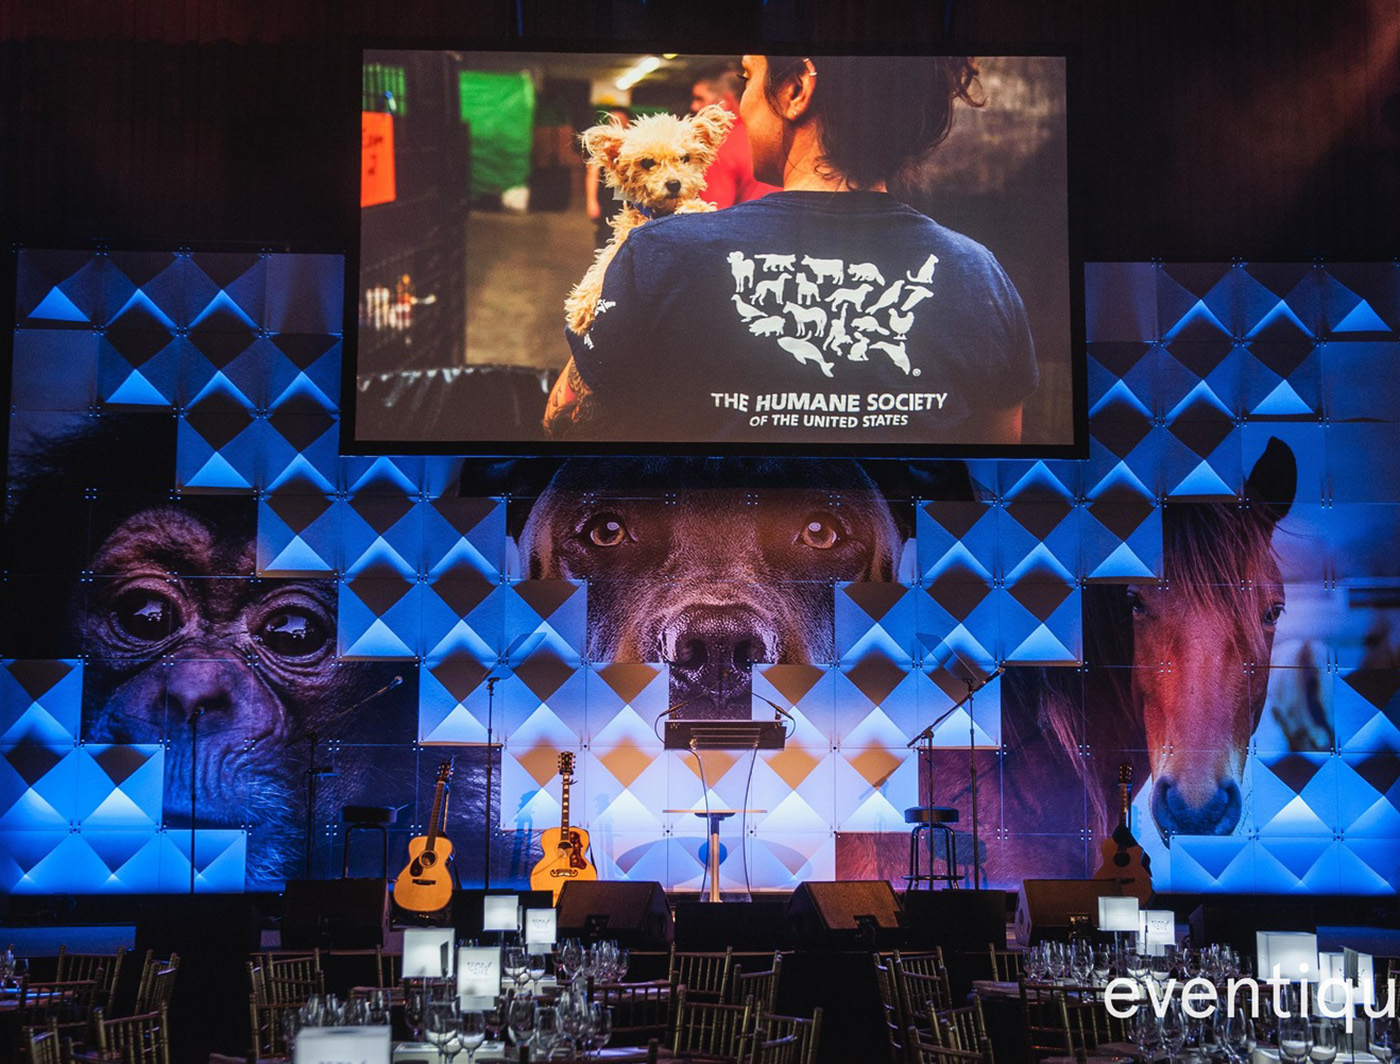 PYRAMID PEEKS THROUGH THE STAGE AT THE HUMANE SOCIETY GALA